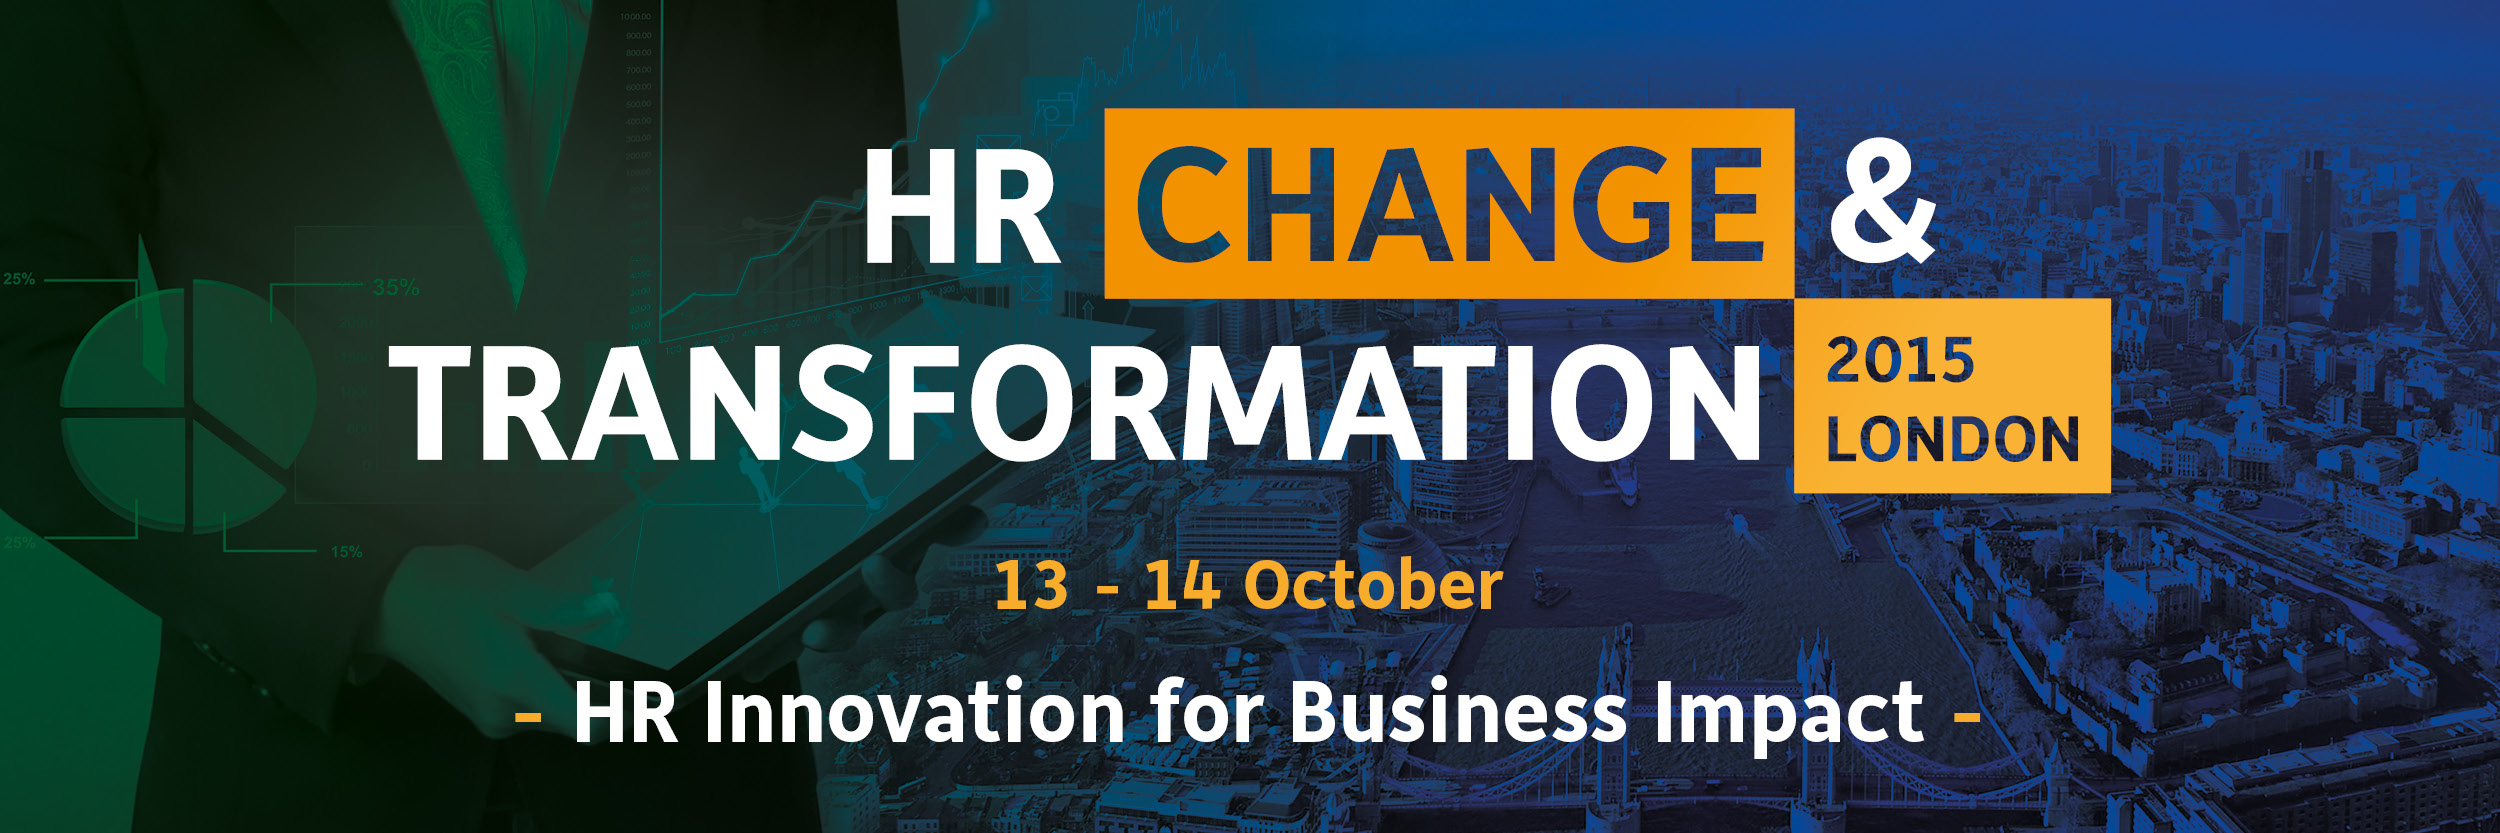 HR change transformation 2015 london